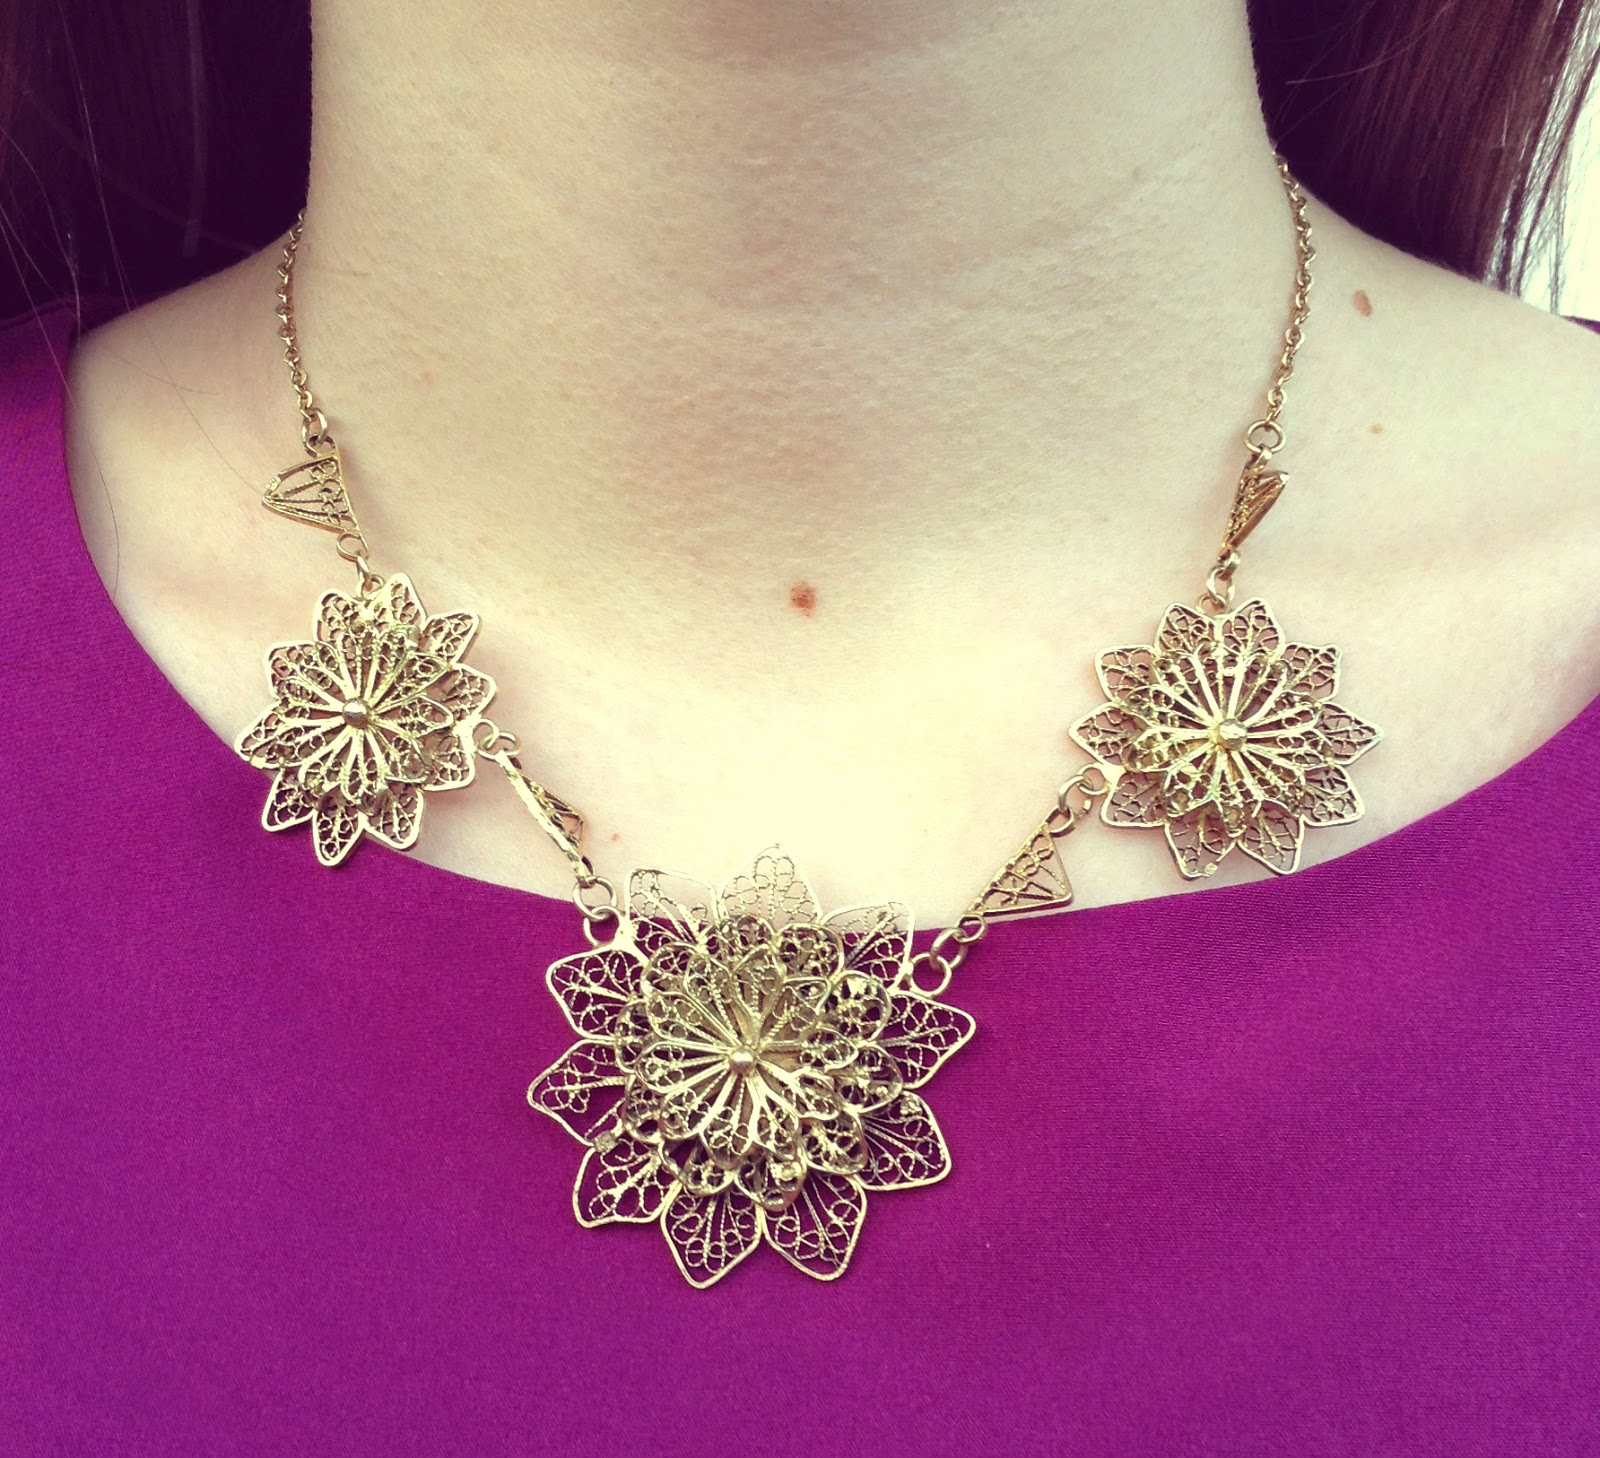 Vintage Gold Necklace - Electric Sunrise Blog